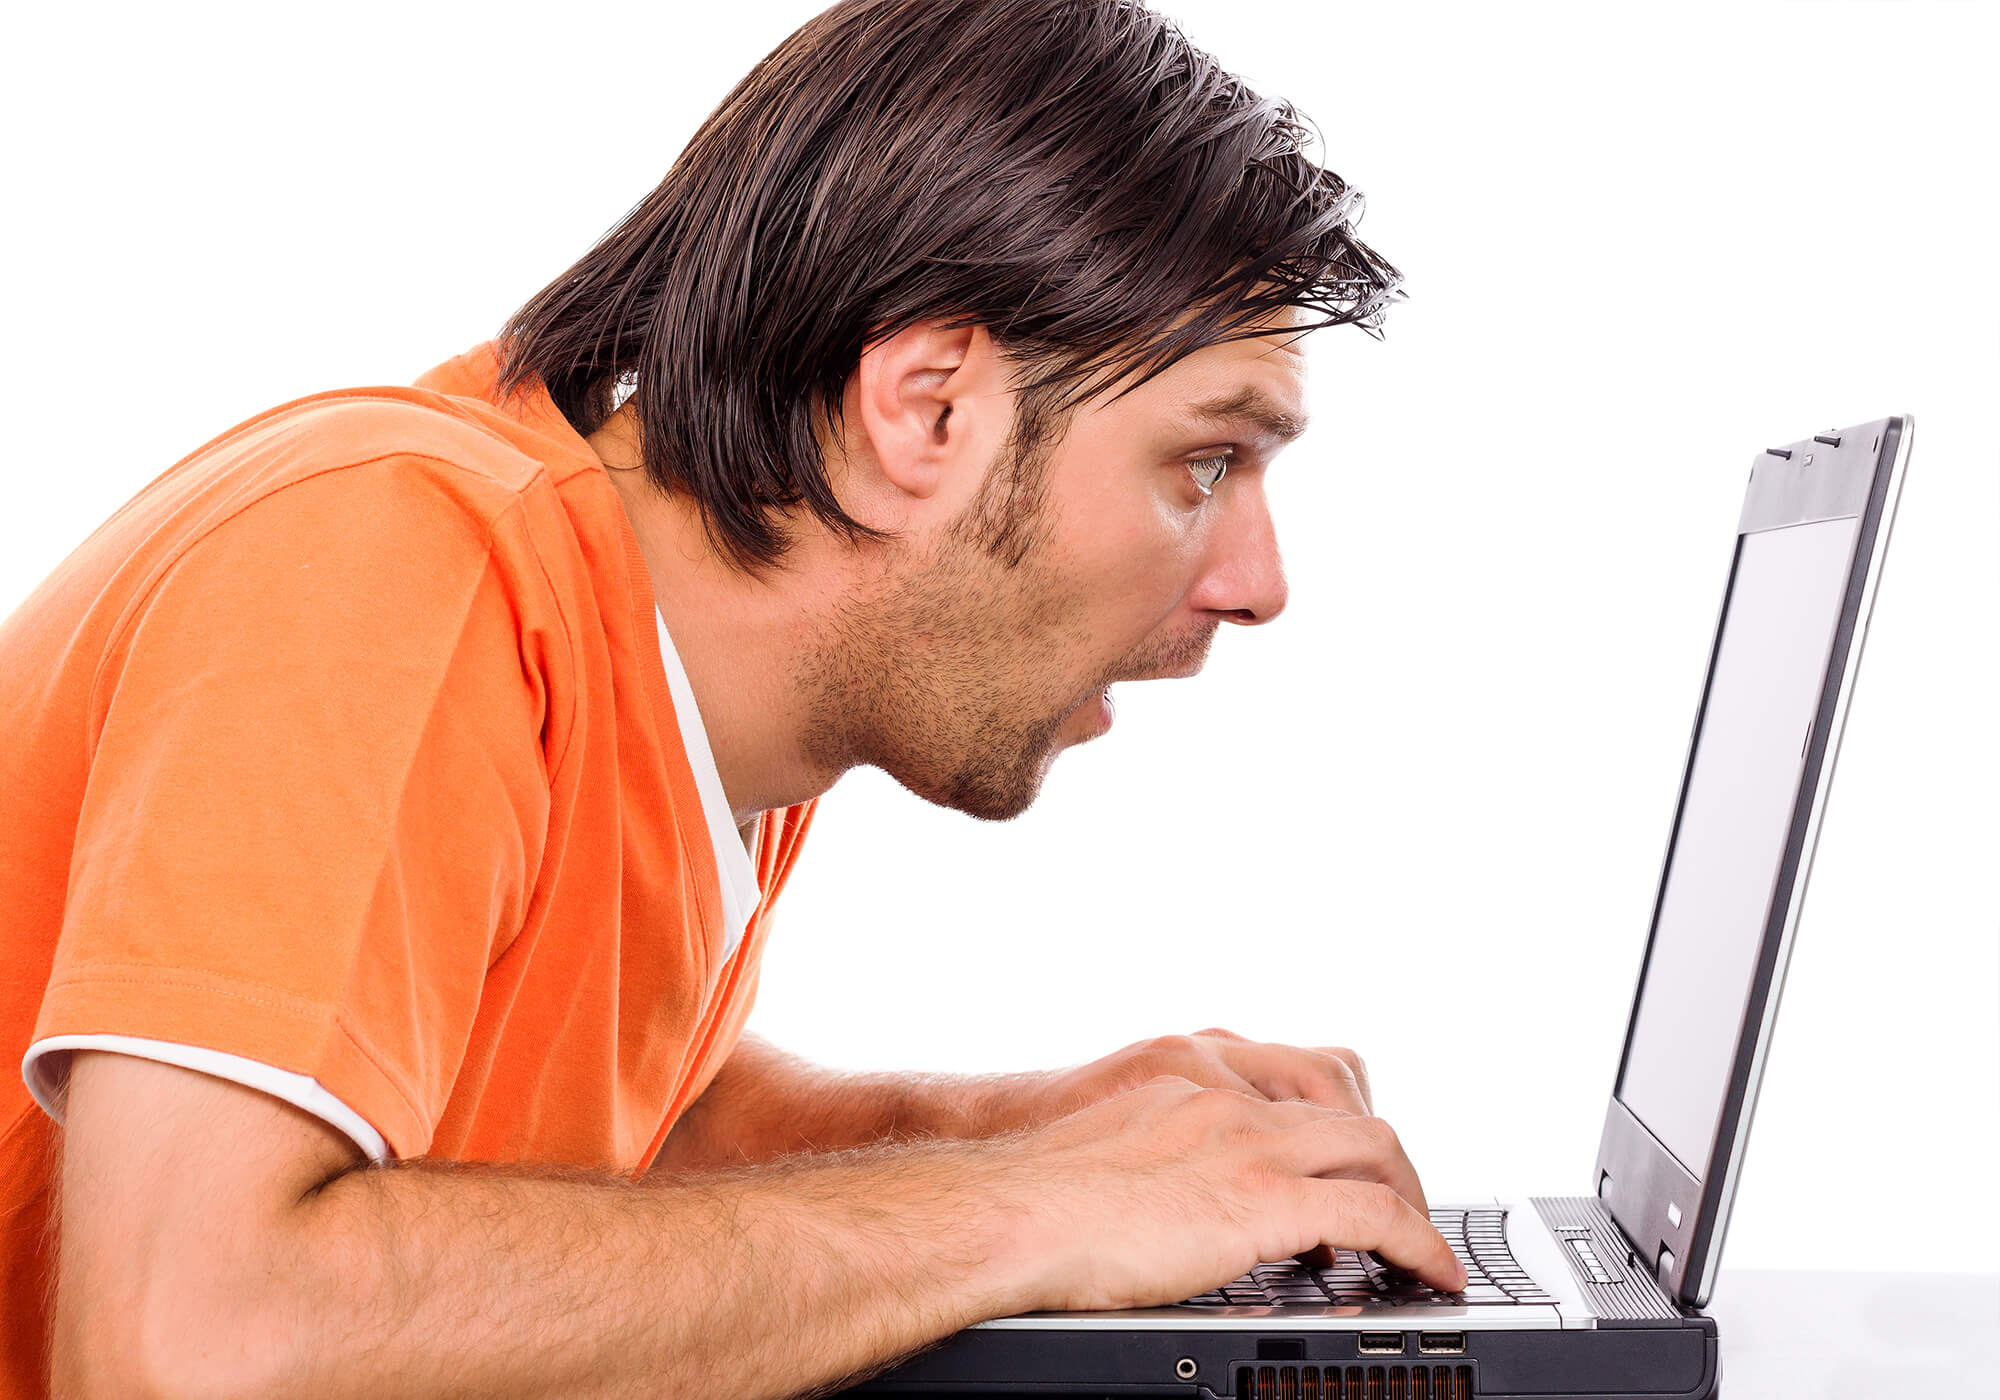 man in orange shirt looking at laptop screen in shock